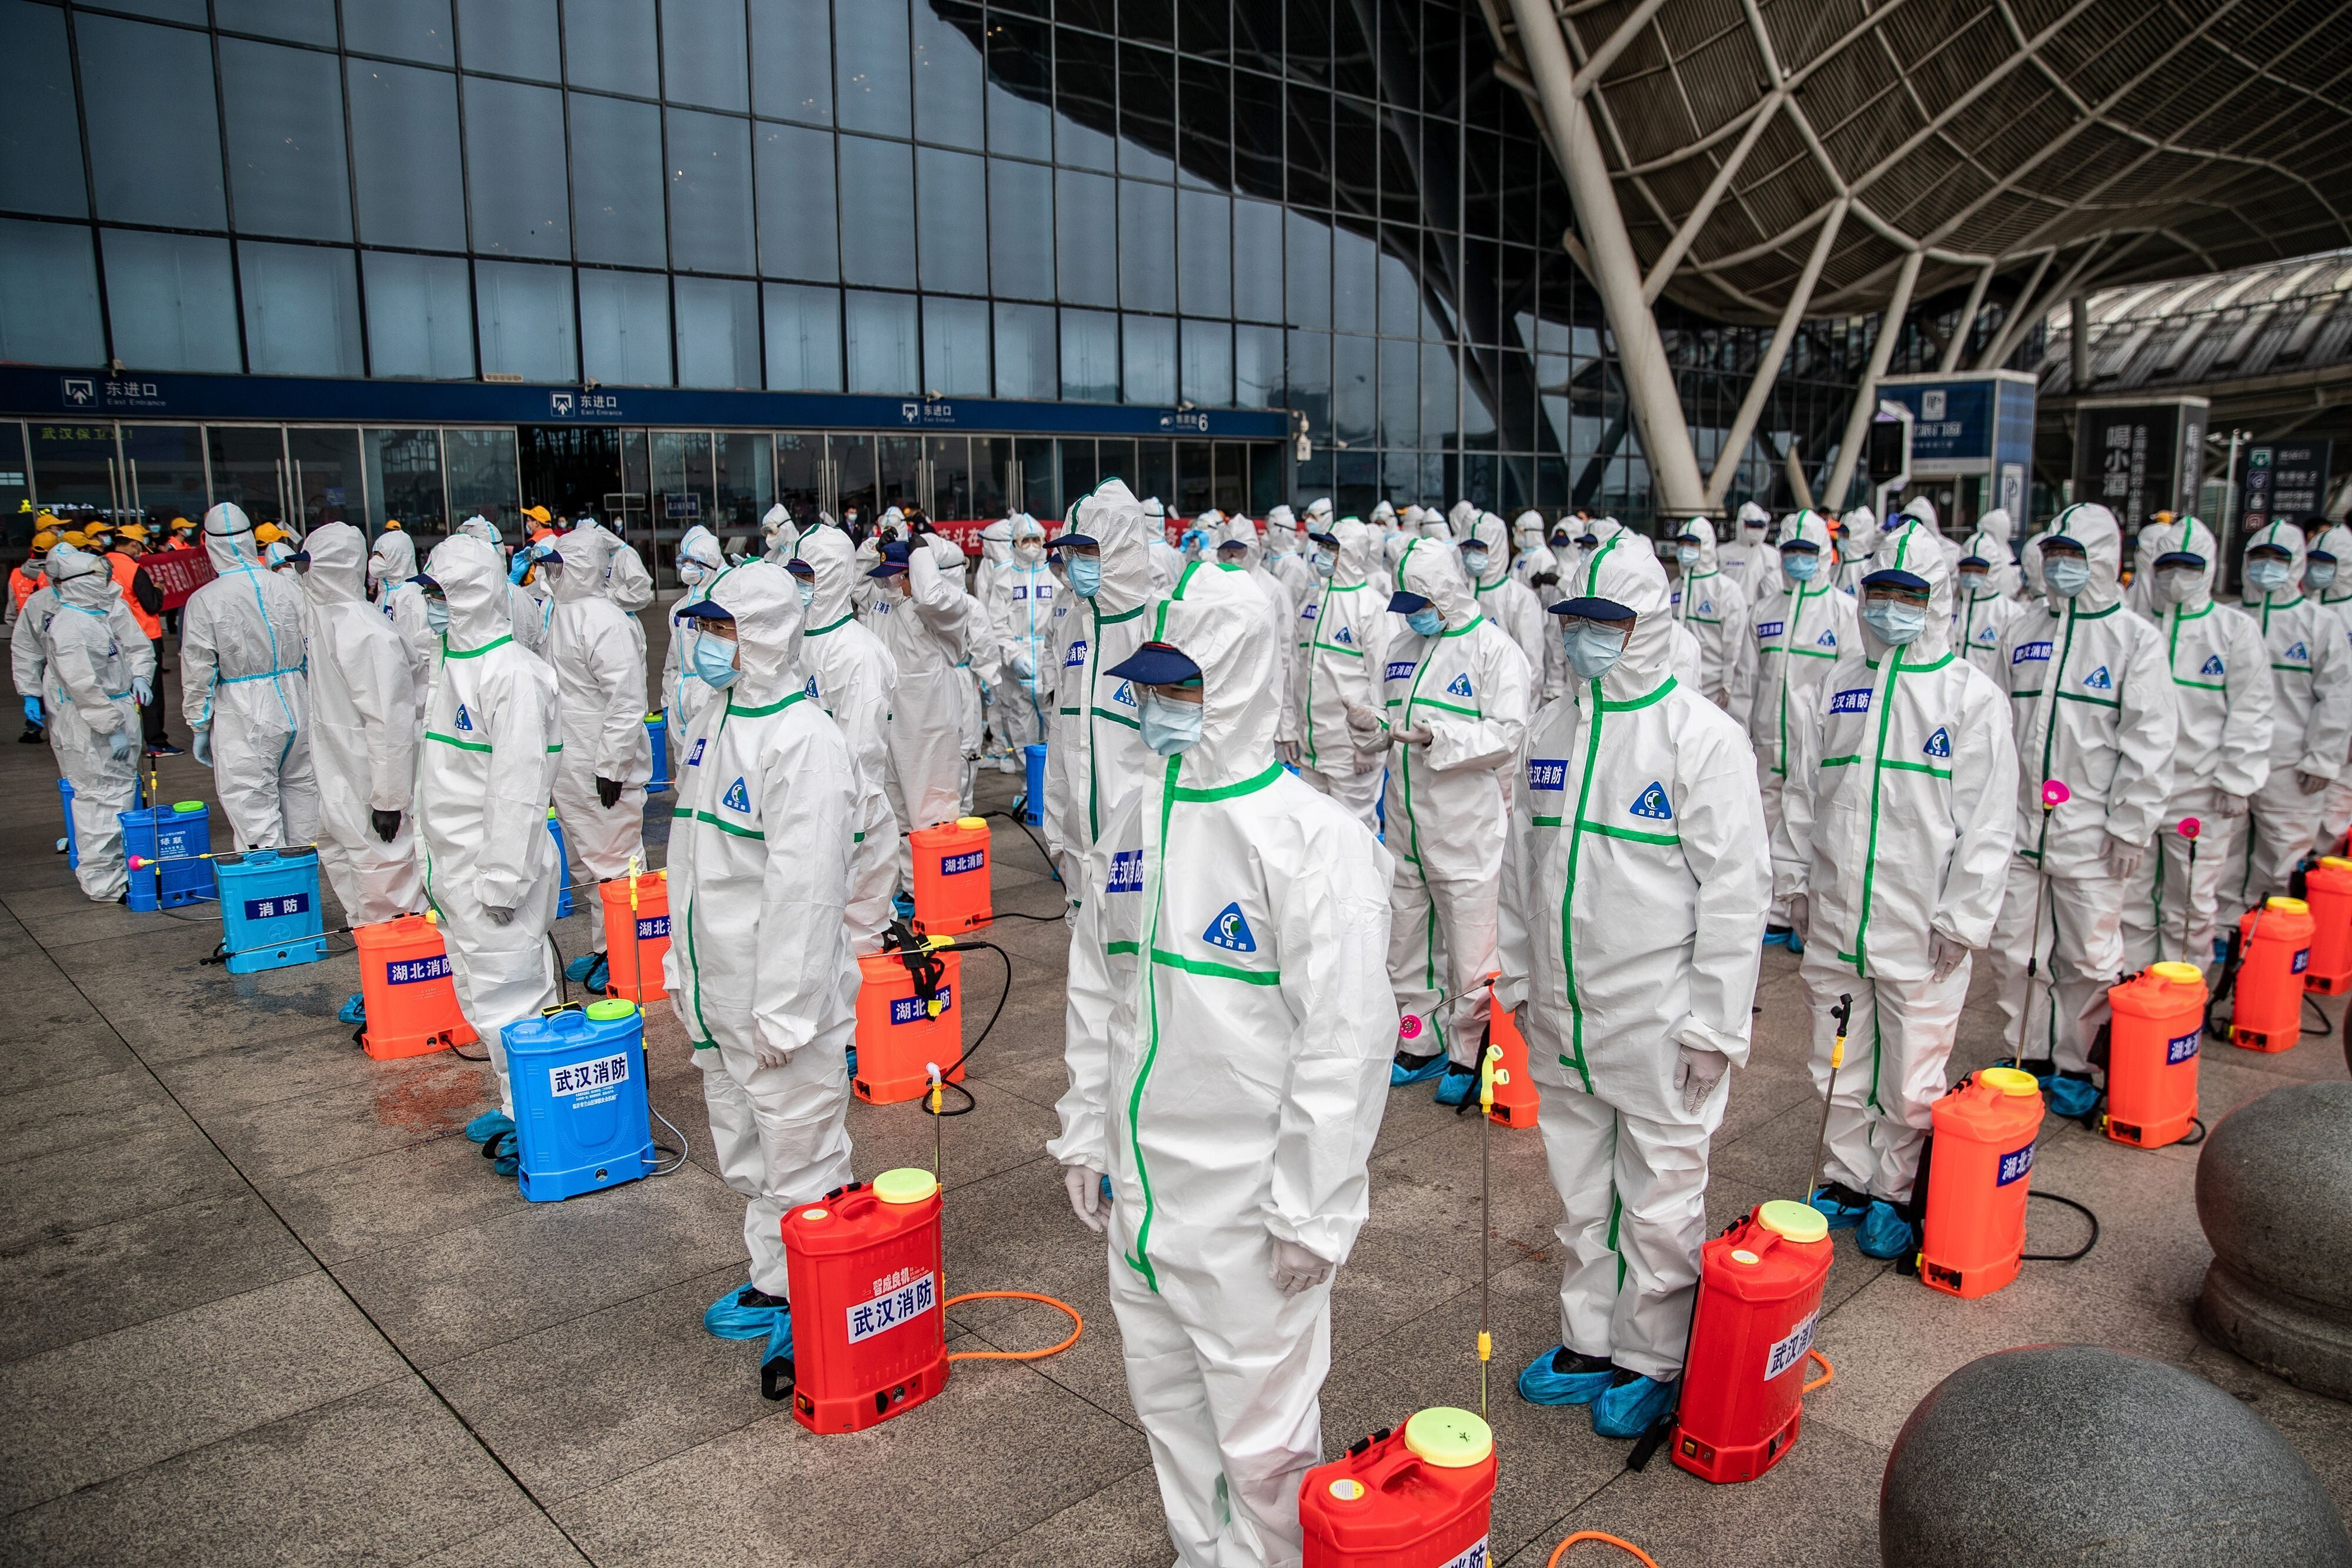 Workers prepare to spray disinfectant at the Wuhan Railway Station in Wuhan, China on March 24, 2020. The city in central Chi